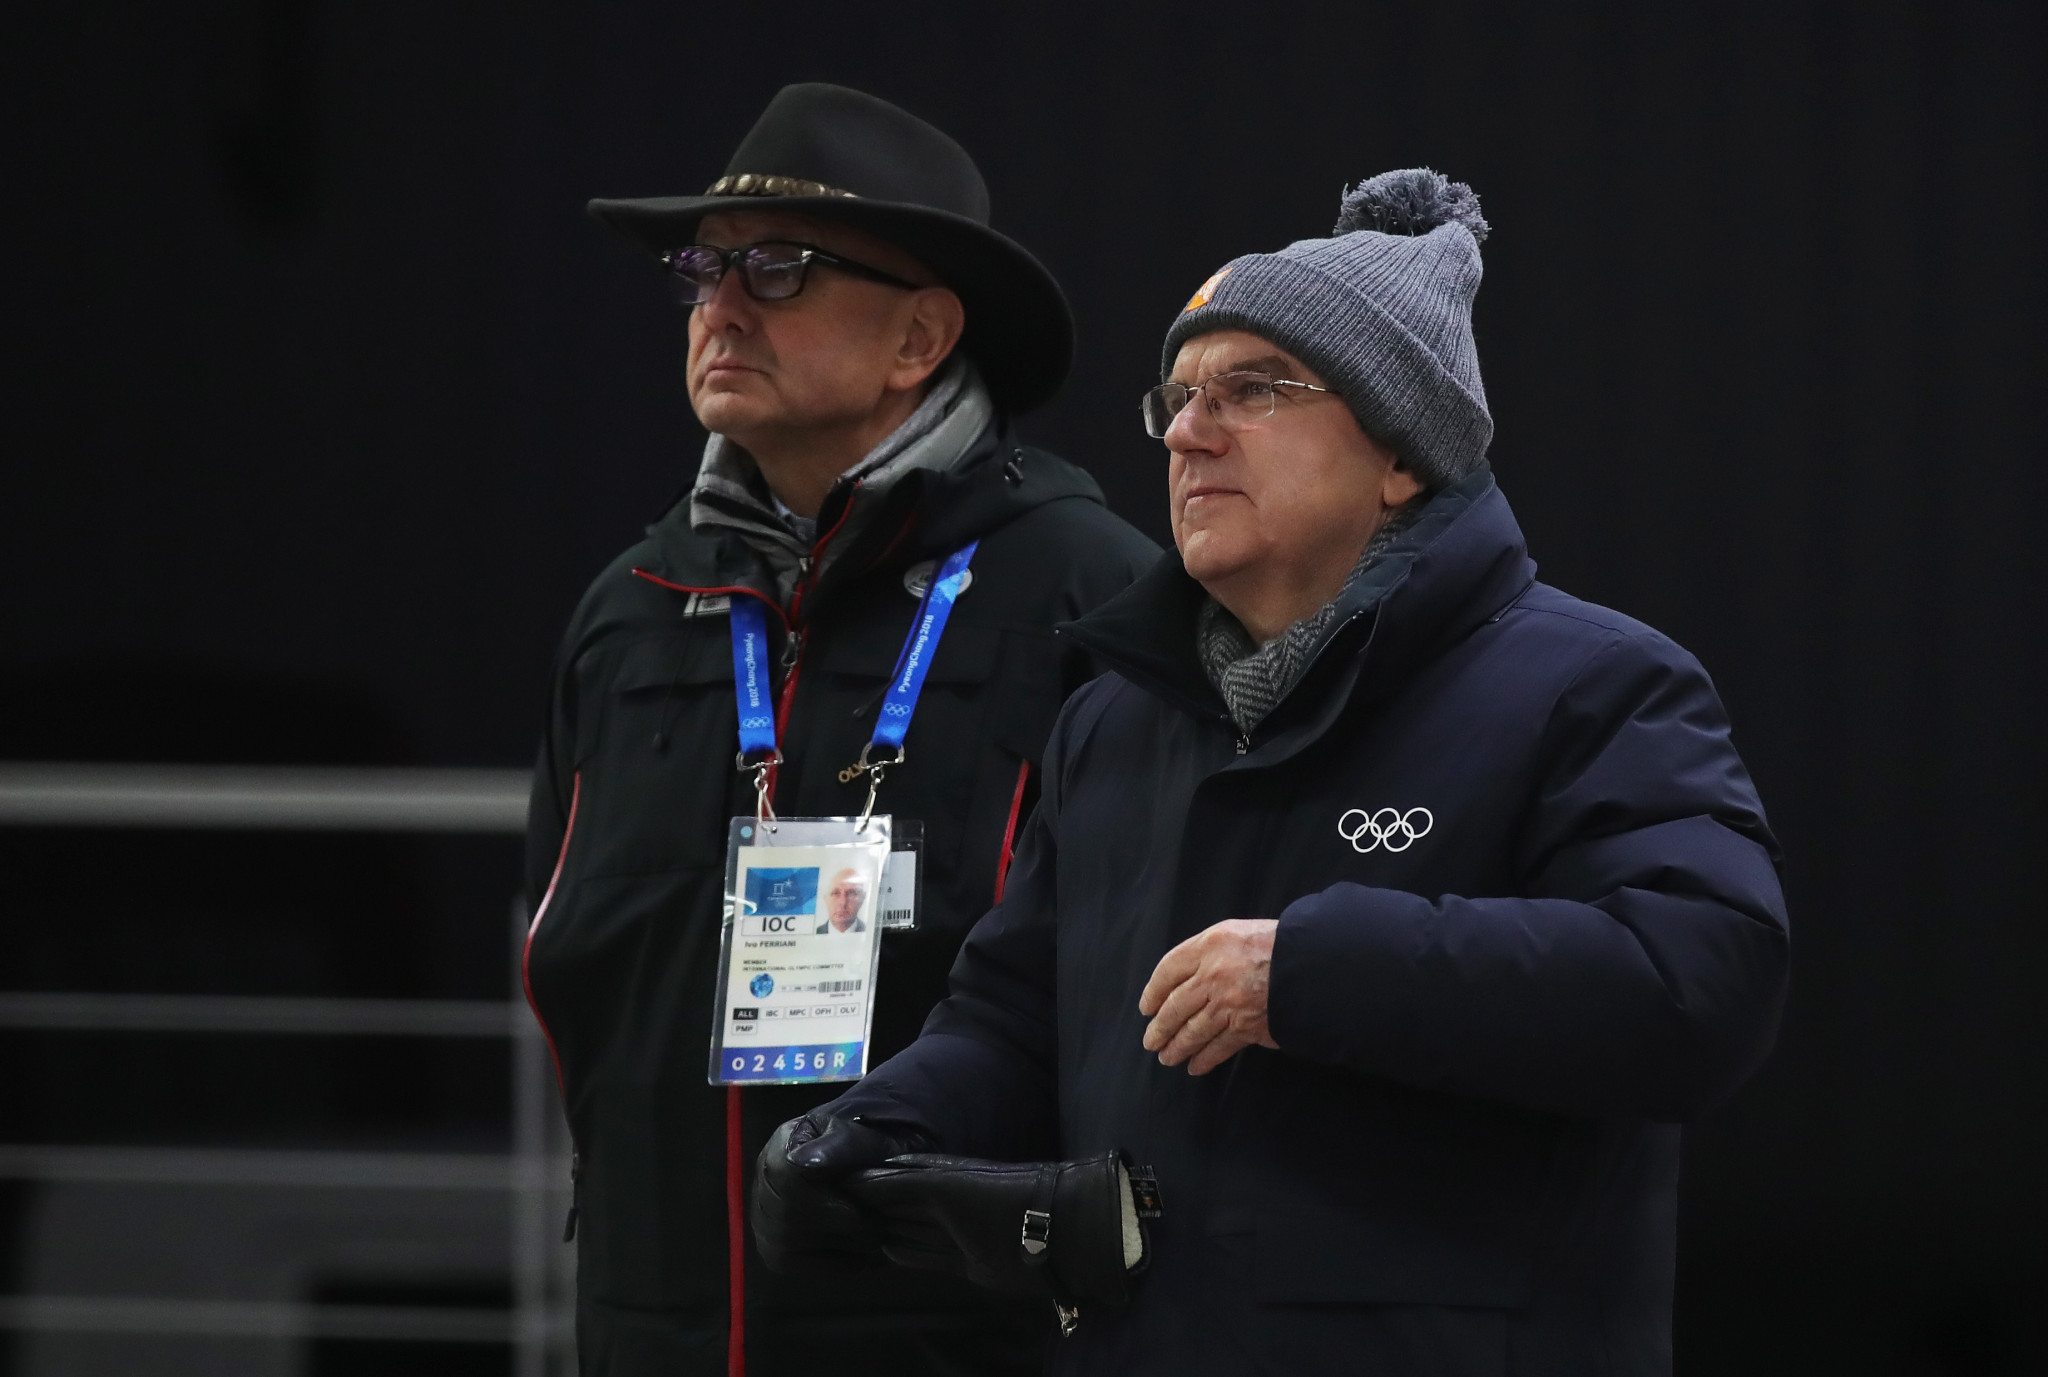 Ivo Ferriani, left, pictured alongside IOC President Thomas Bach ©Getty Images